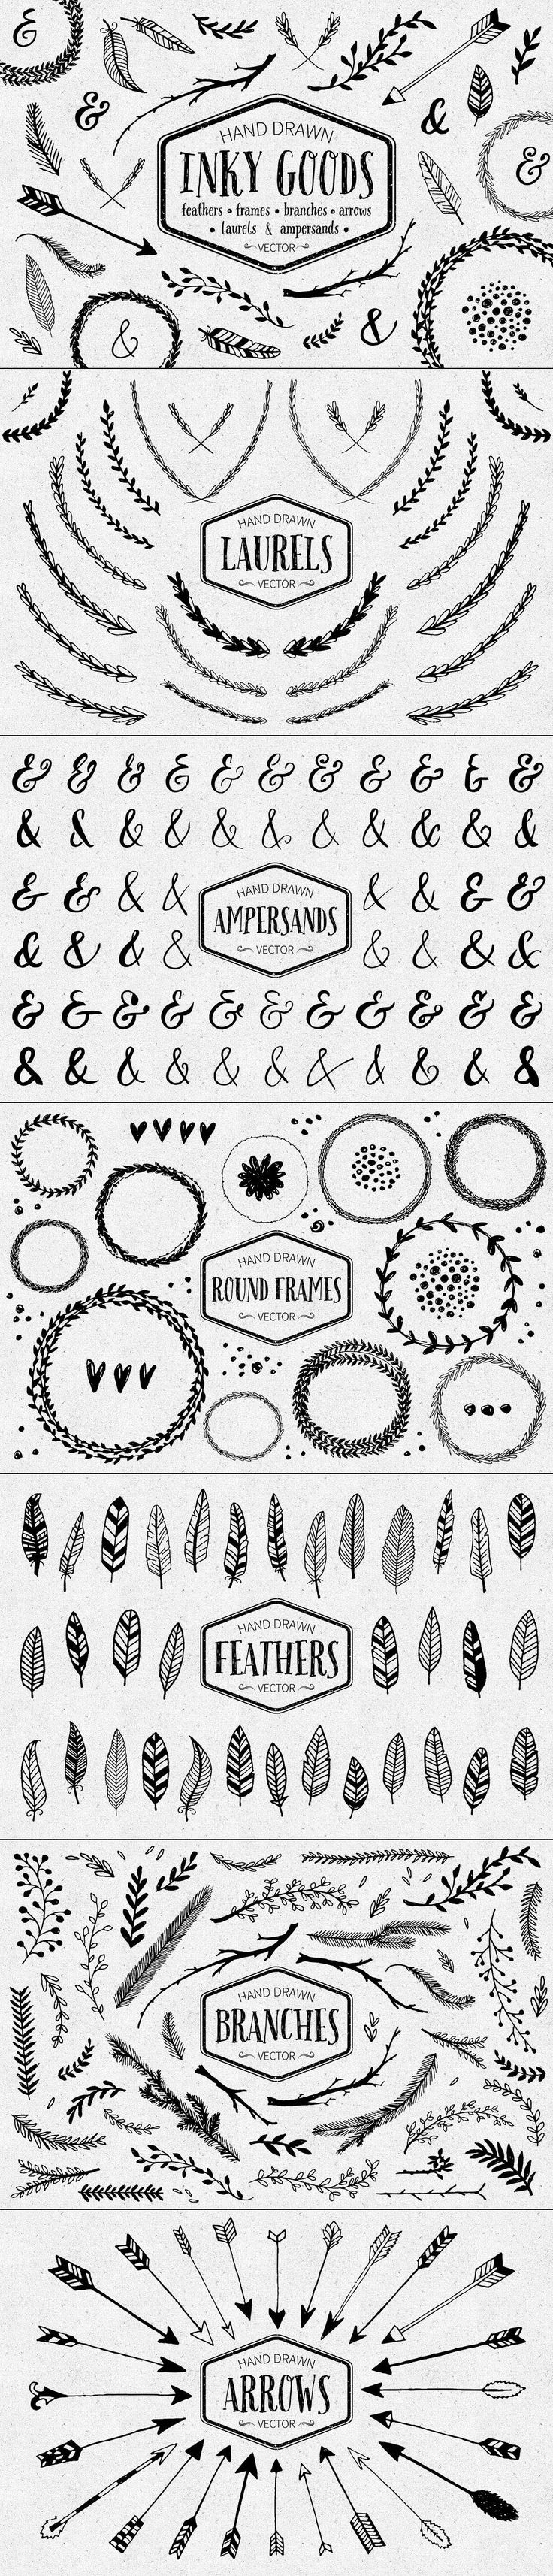 Inky Goods Vector Graphics by Pixelwise Co. on Creative Market